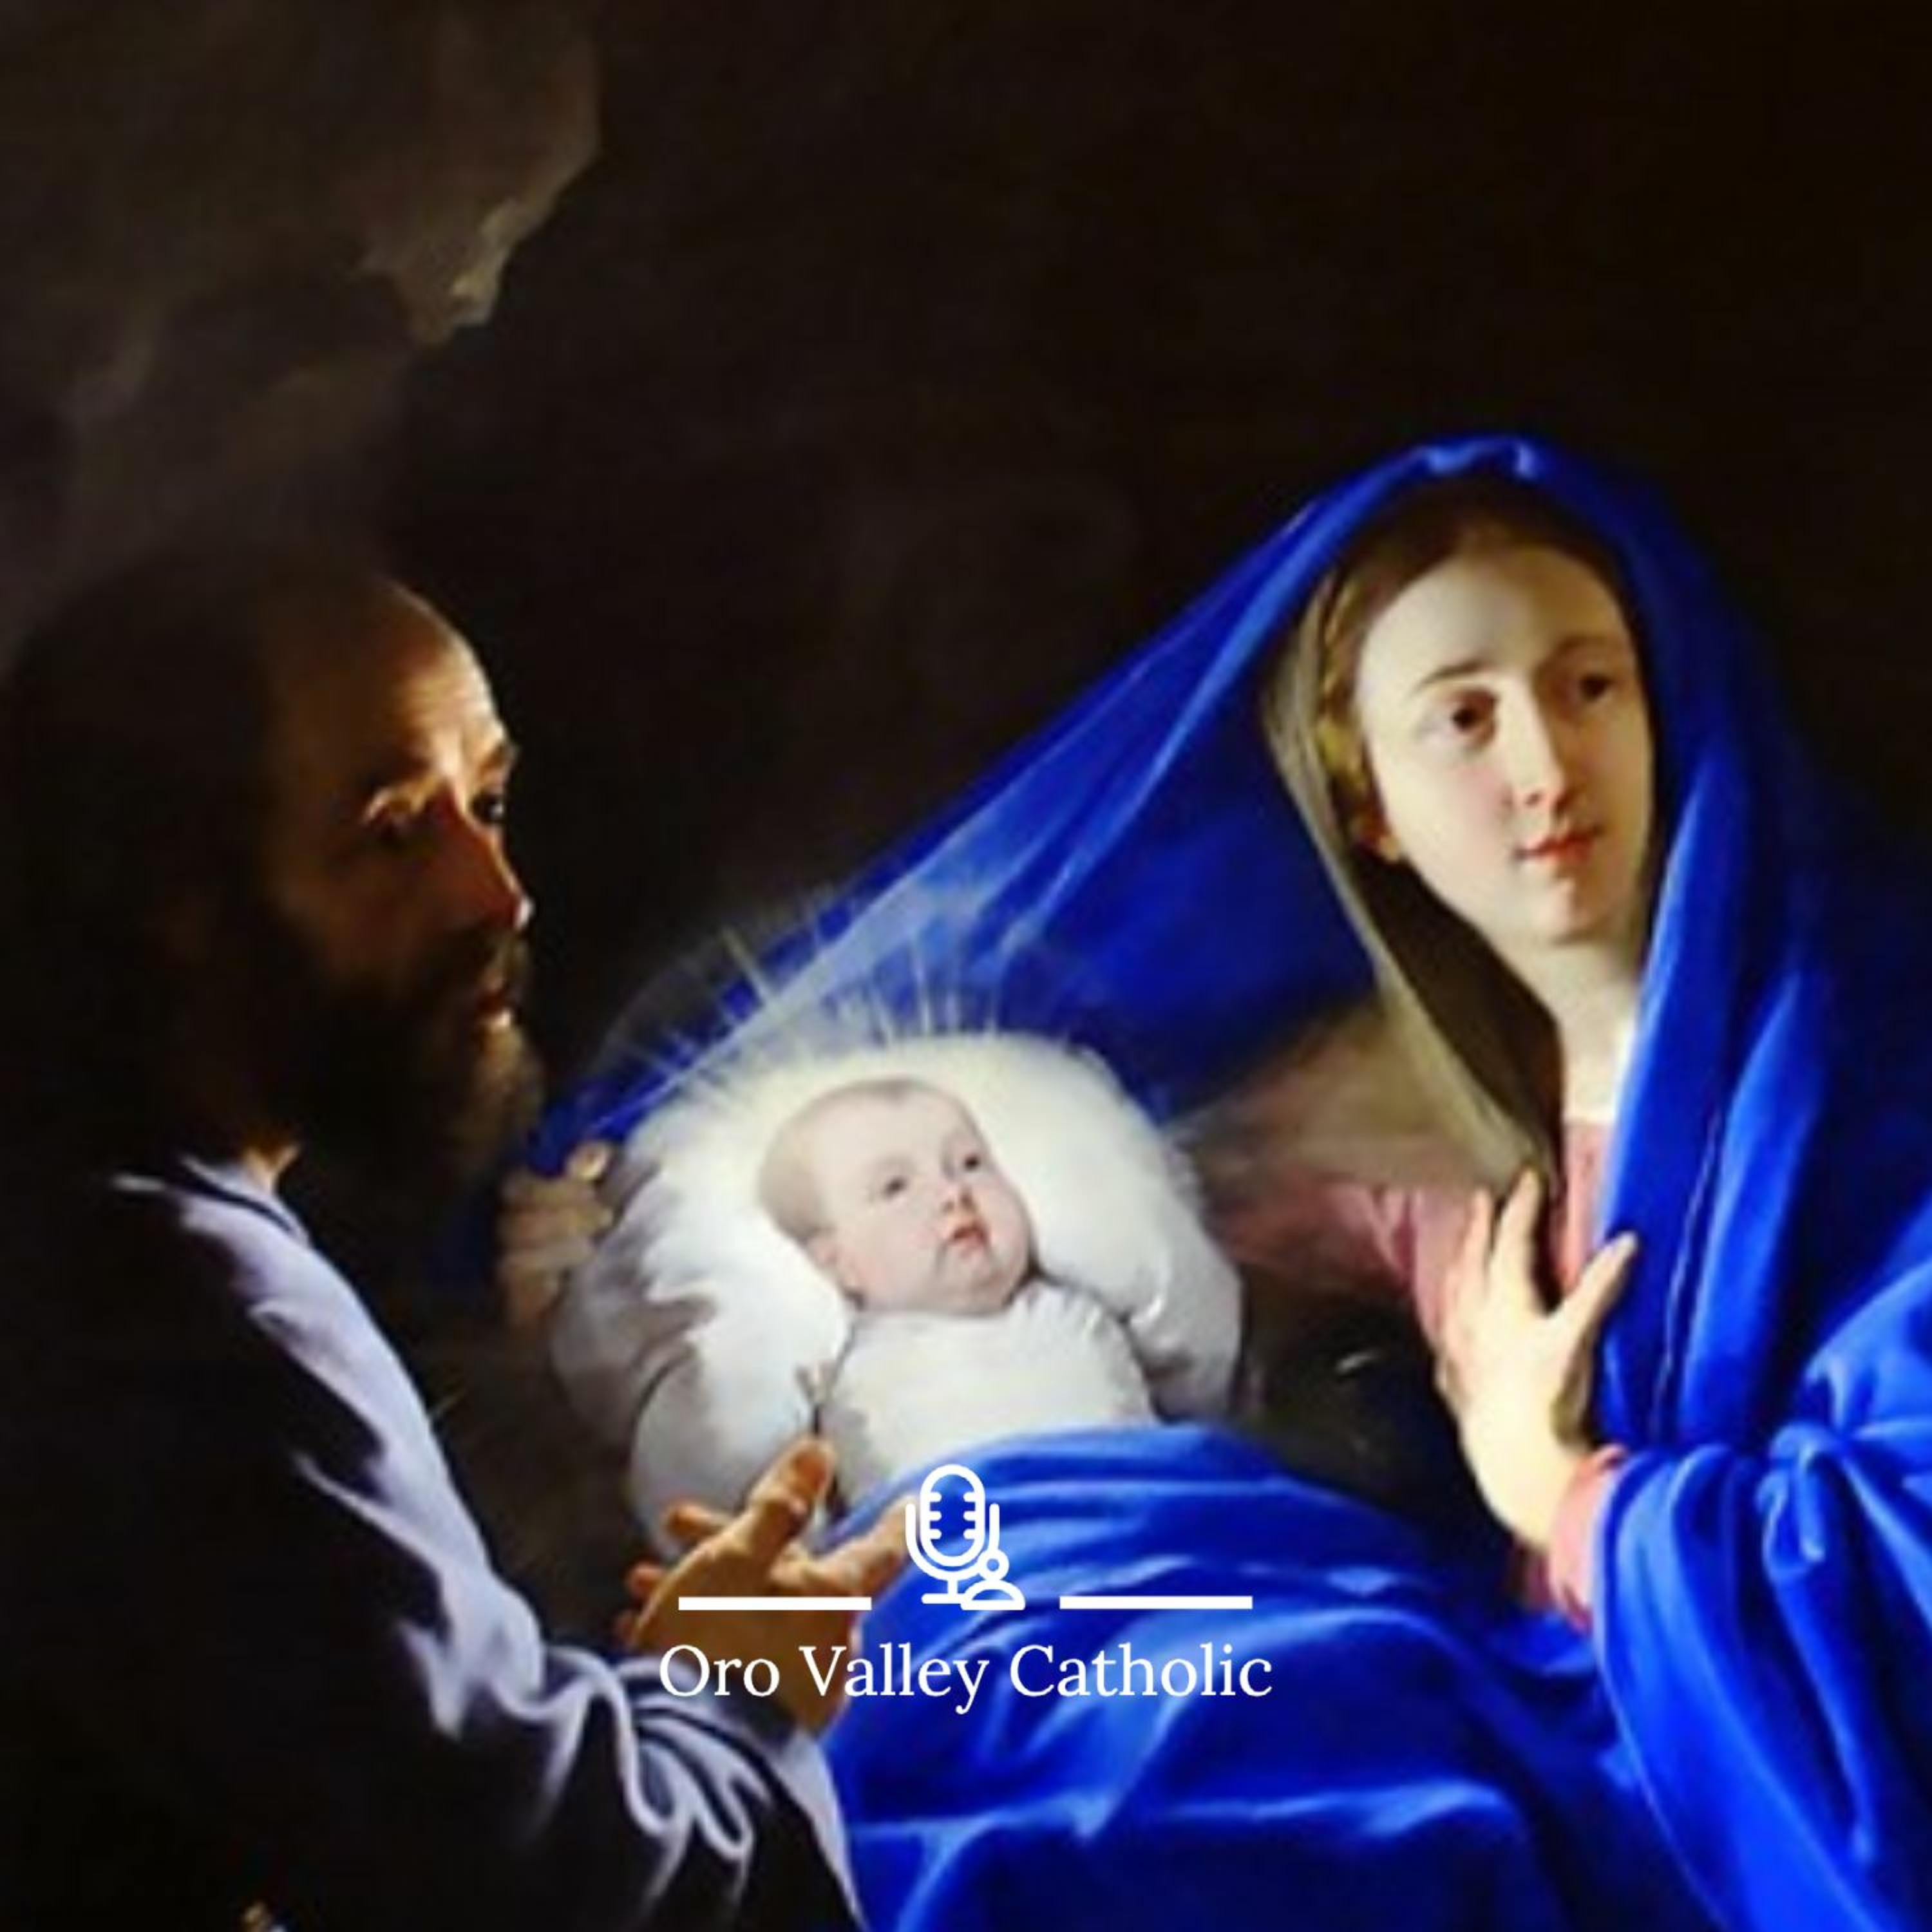 The Holy Family, our family